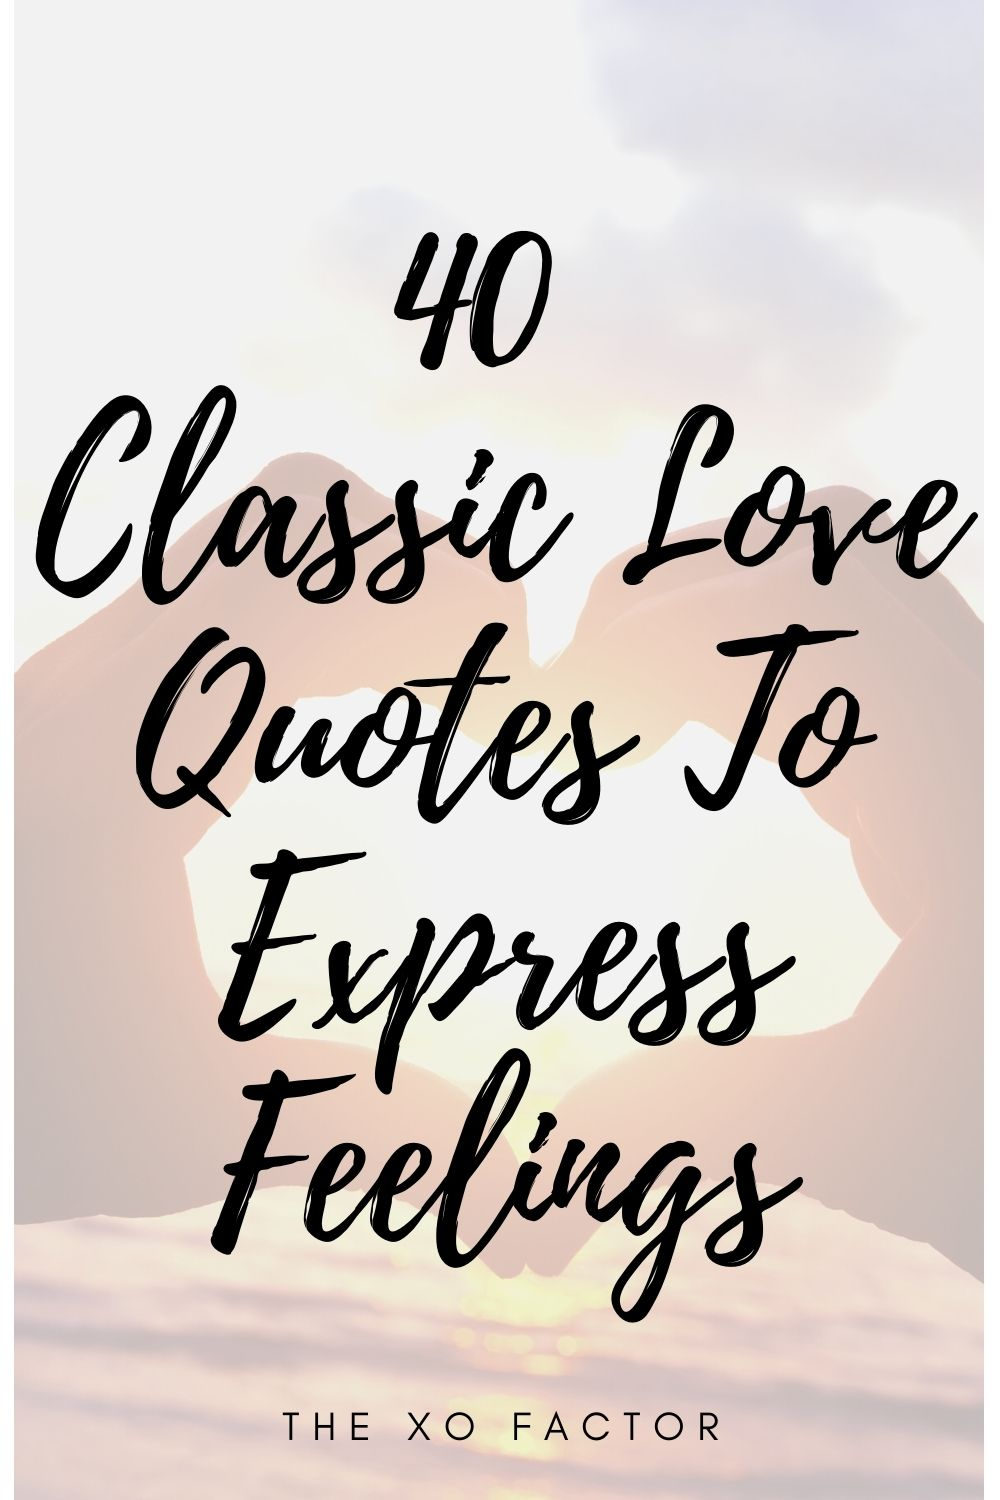 40 classic love quotes to express your feelings